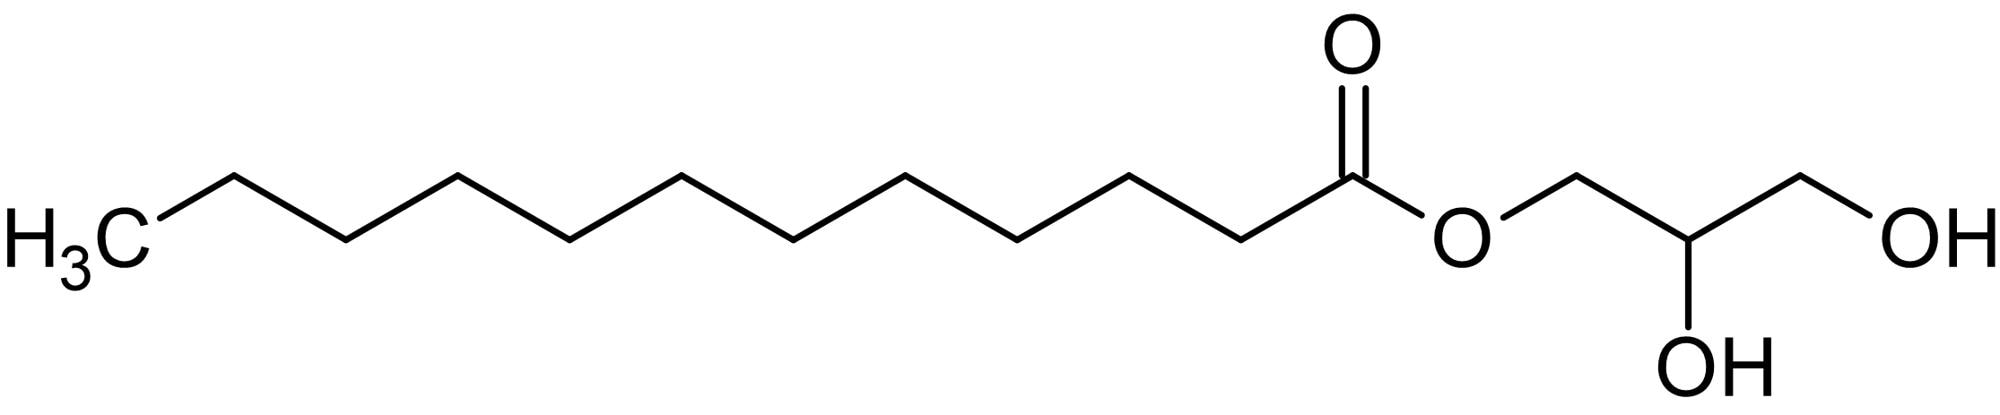 Chemical Structure - Glycerol monolaurate, Monoglyceride and naturally occurring surfactant (ab142307)